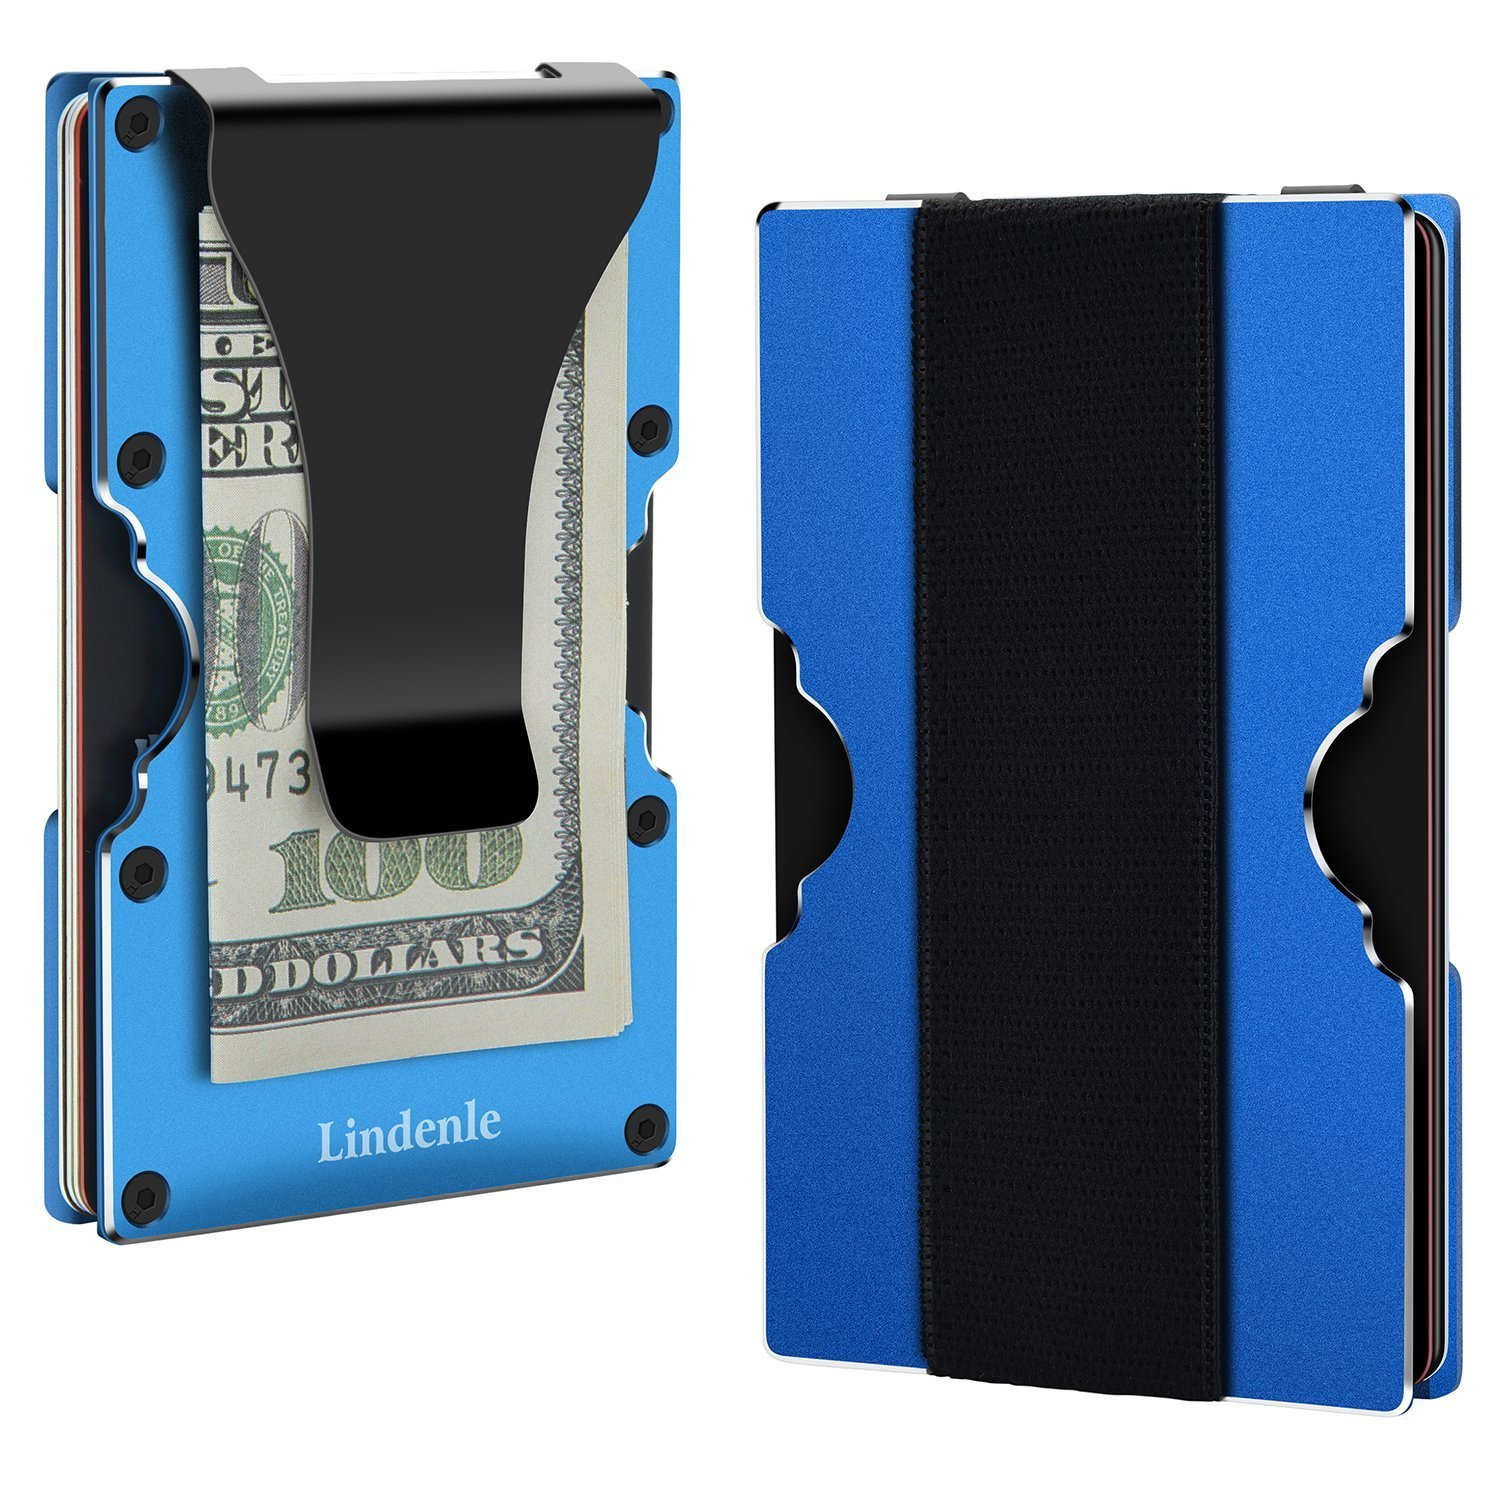 Lindenle Mens Minimalist Metal Wallet Aluminum Credit Card Holder Money Clip